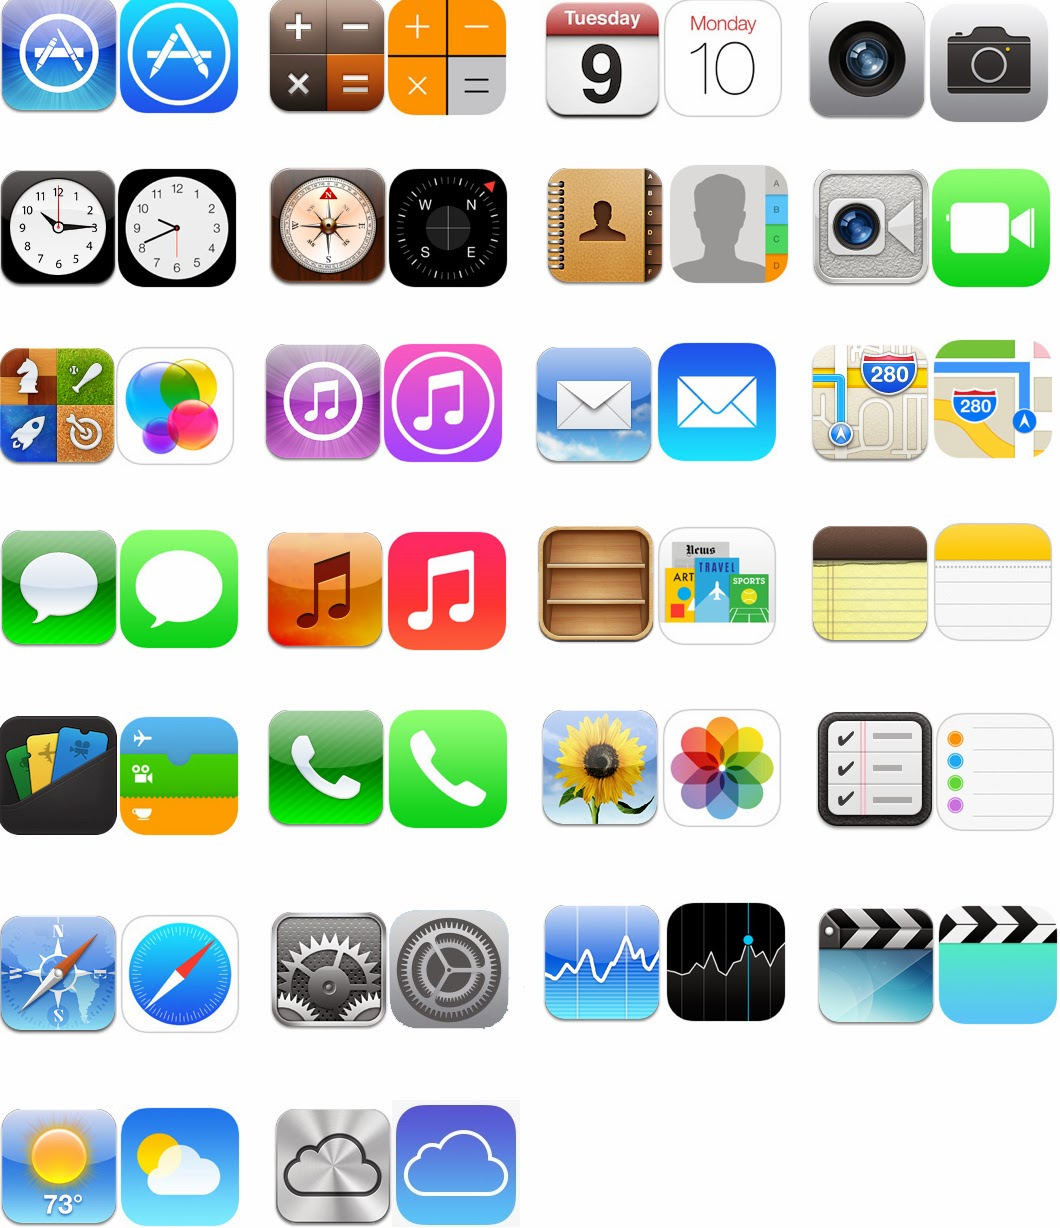 ios6_vs_ios7_icons.jpg